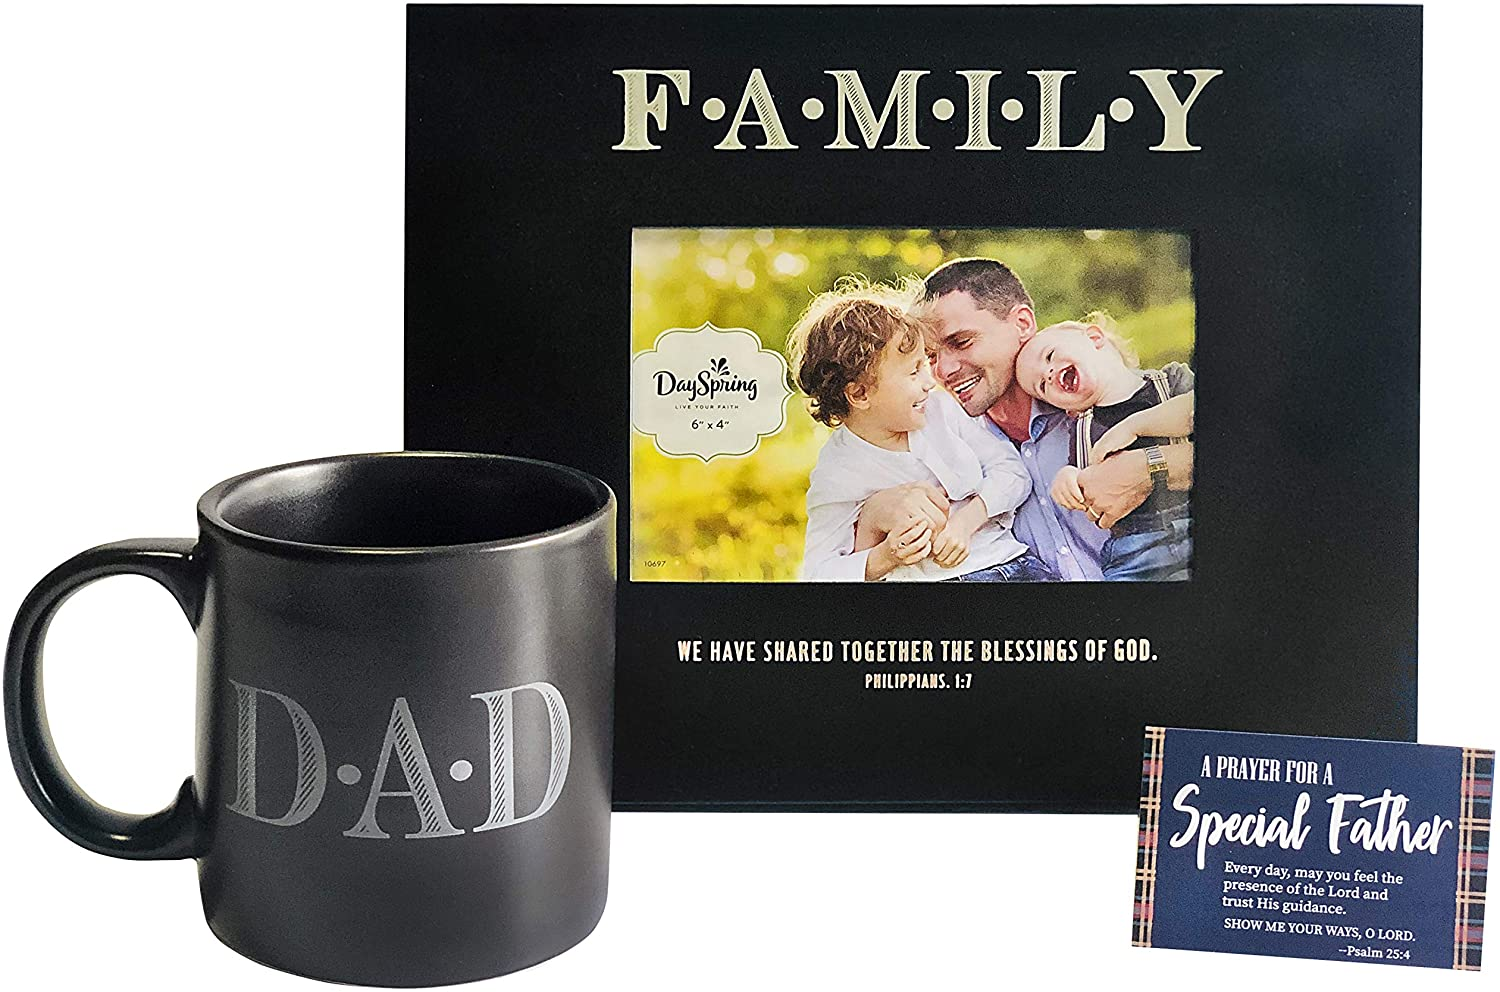 Dad Frame Mug Gifts For Fathers Day And Birthday 12 Oz Dad Ceramic Coffee Cup Family Picture Frame With A 3 X 2 Prayer Card For A Special Father Walmart Com Walmart Com